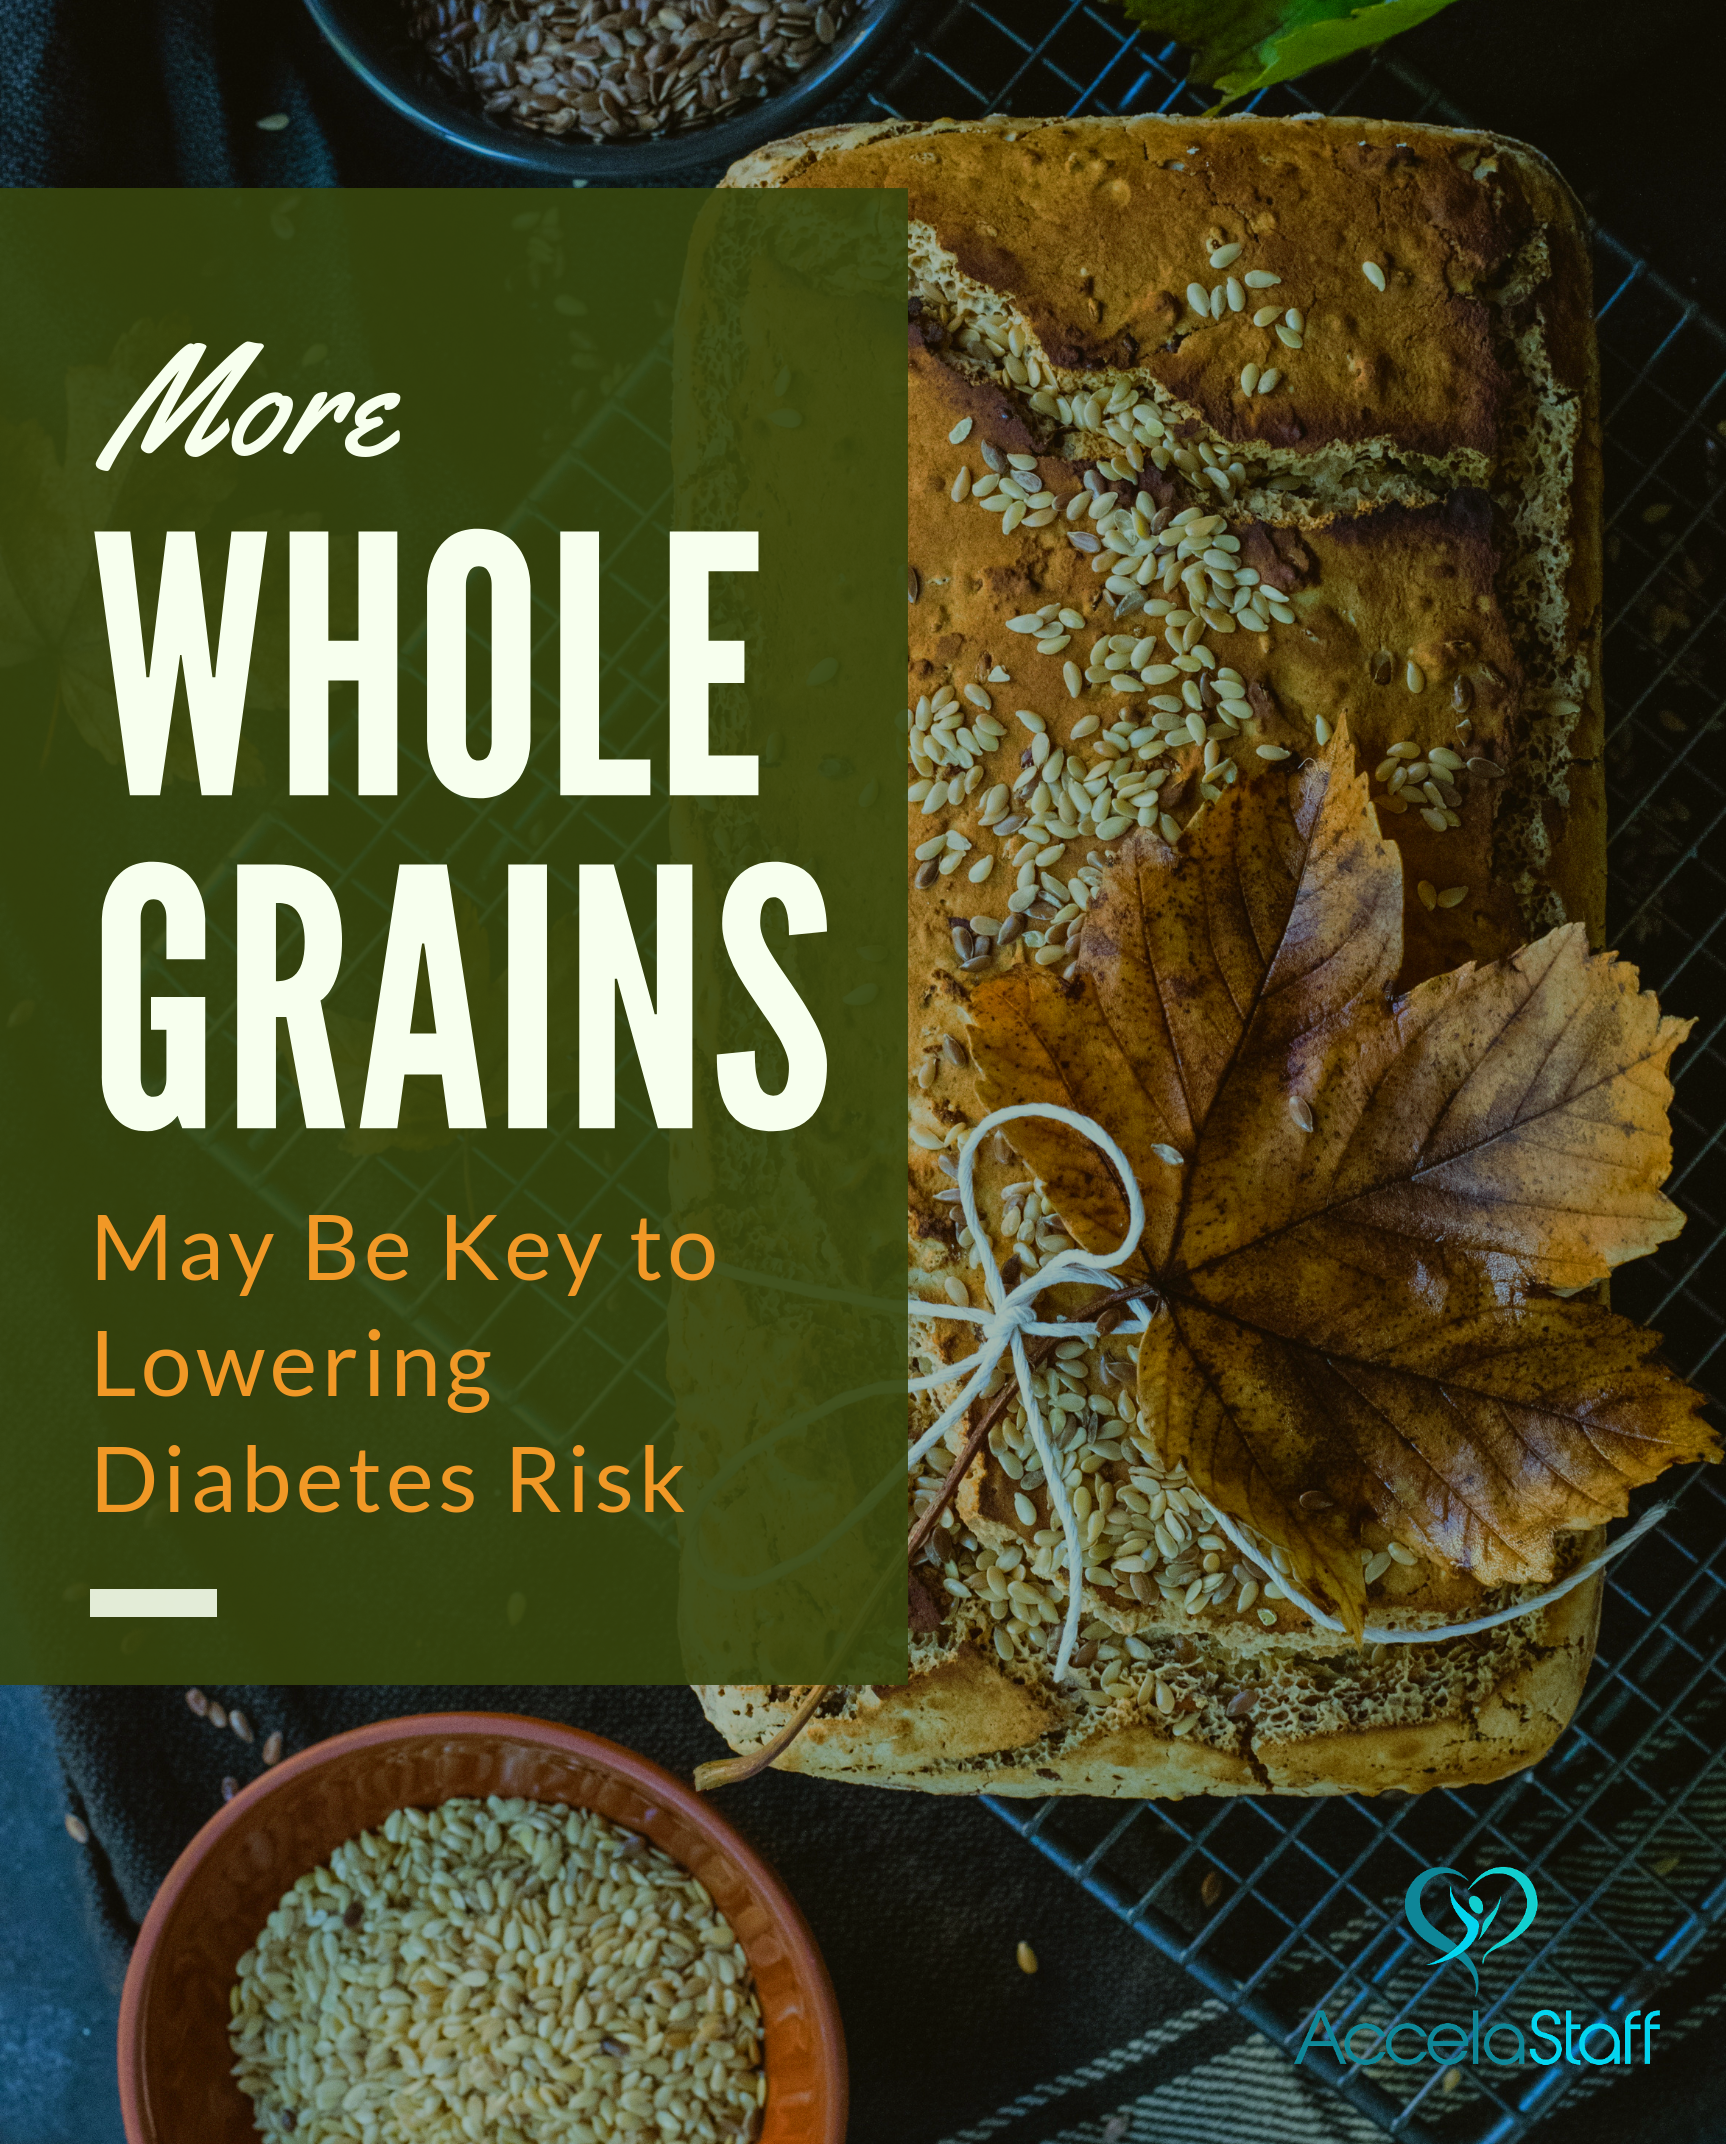 Eating more whole grain foods, such as rye bread, whole